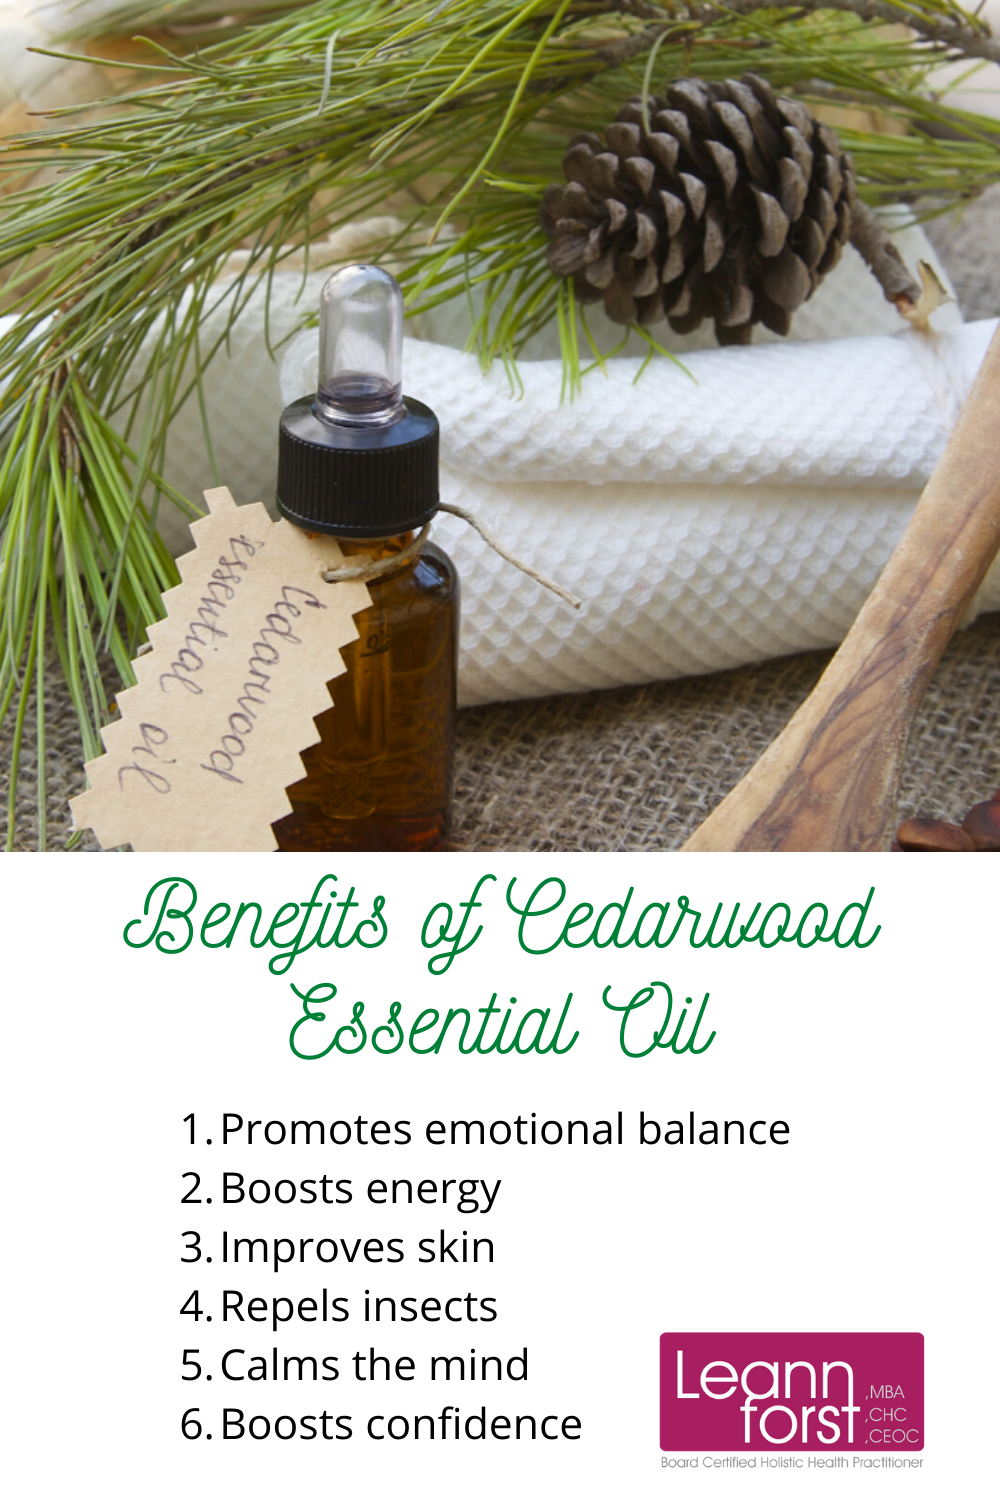 Benefits of Cedarwood Essential Oil | LeannForst.com